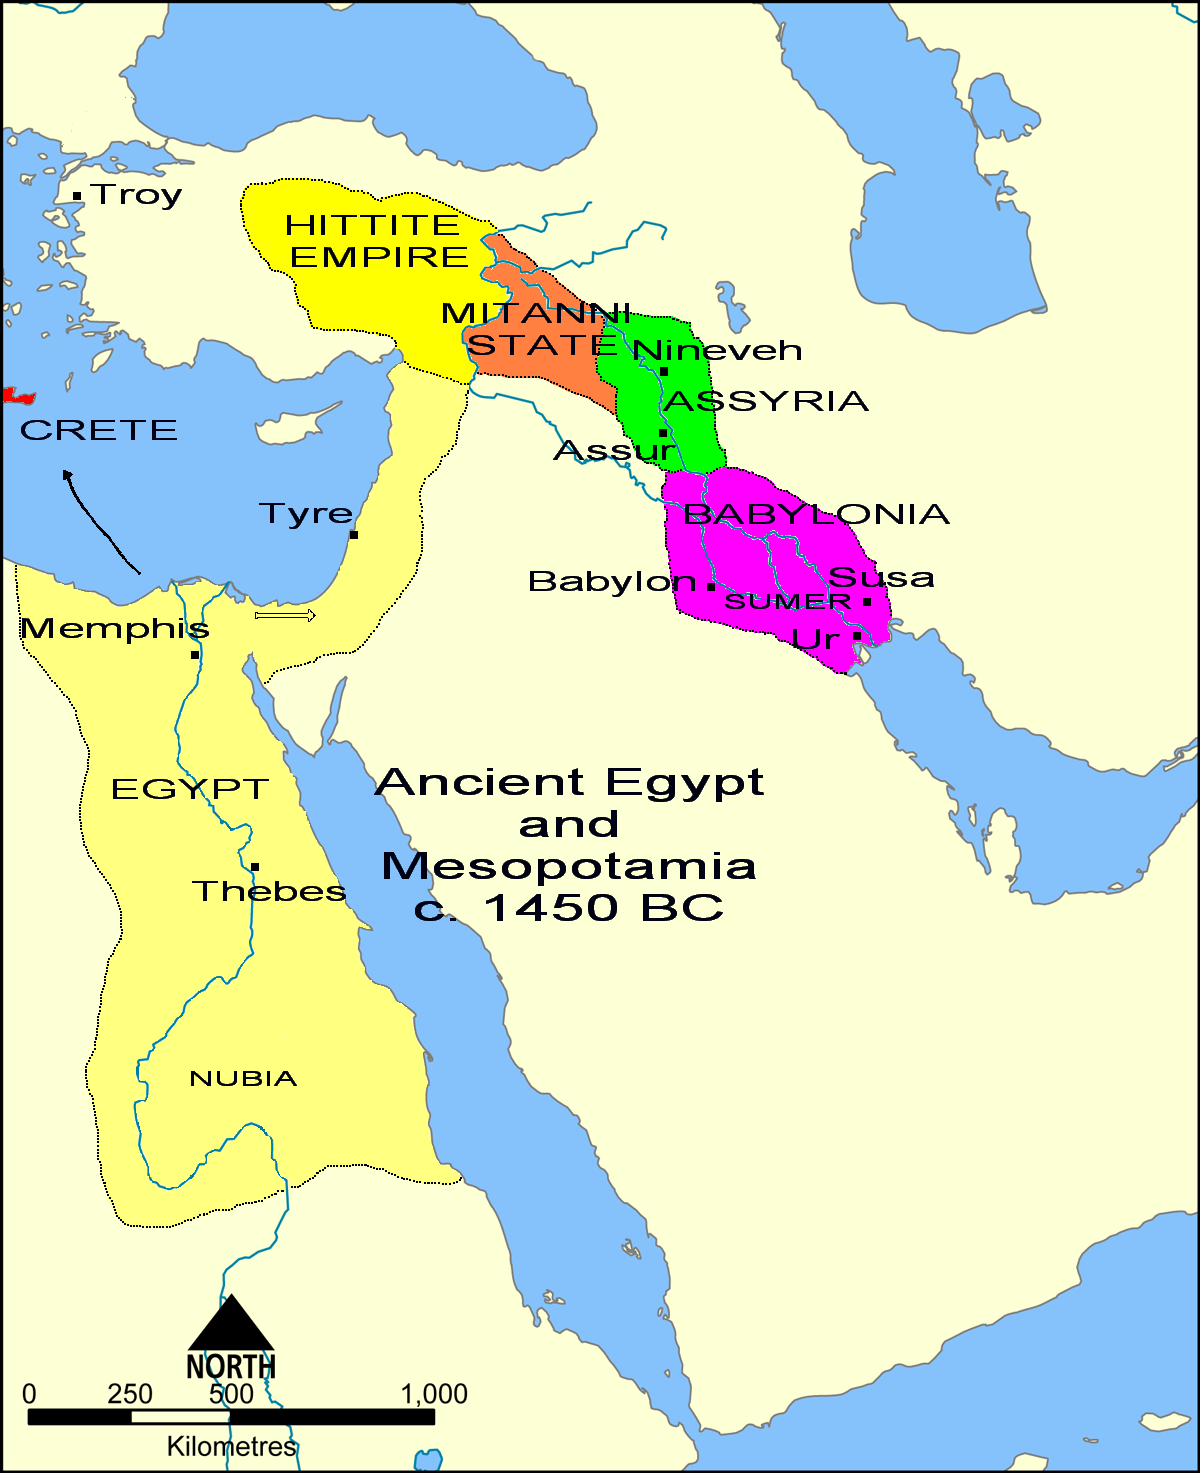 ap world mesopotamia and egypt Ap world history 18 september 2012 egypt and mesopotamia egypt and mesopotamia were two great ancient civilizations that were similar in some ways, but.